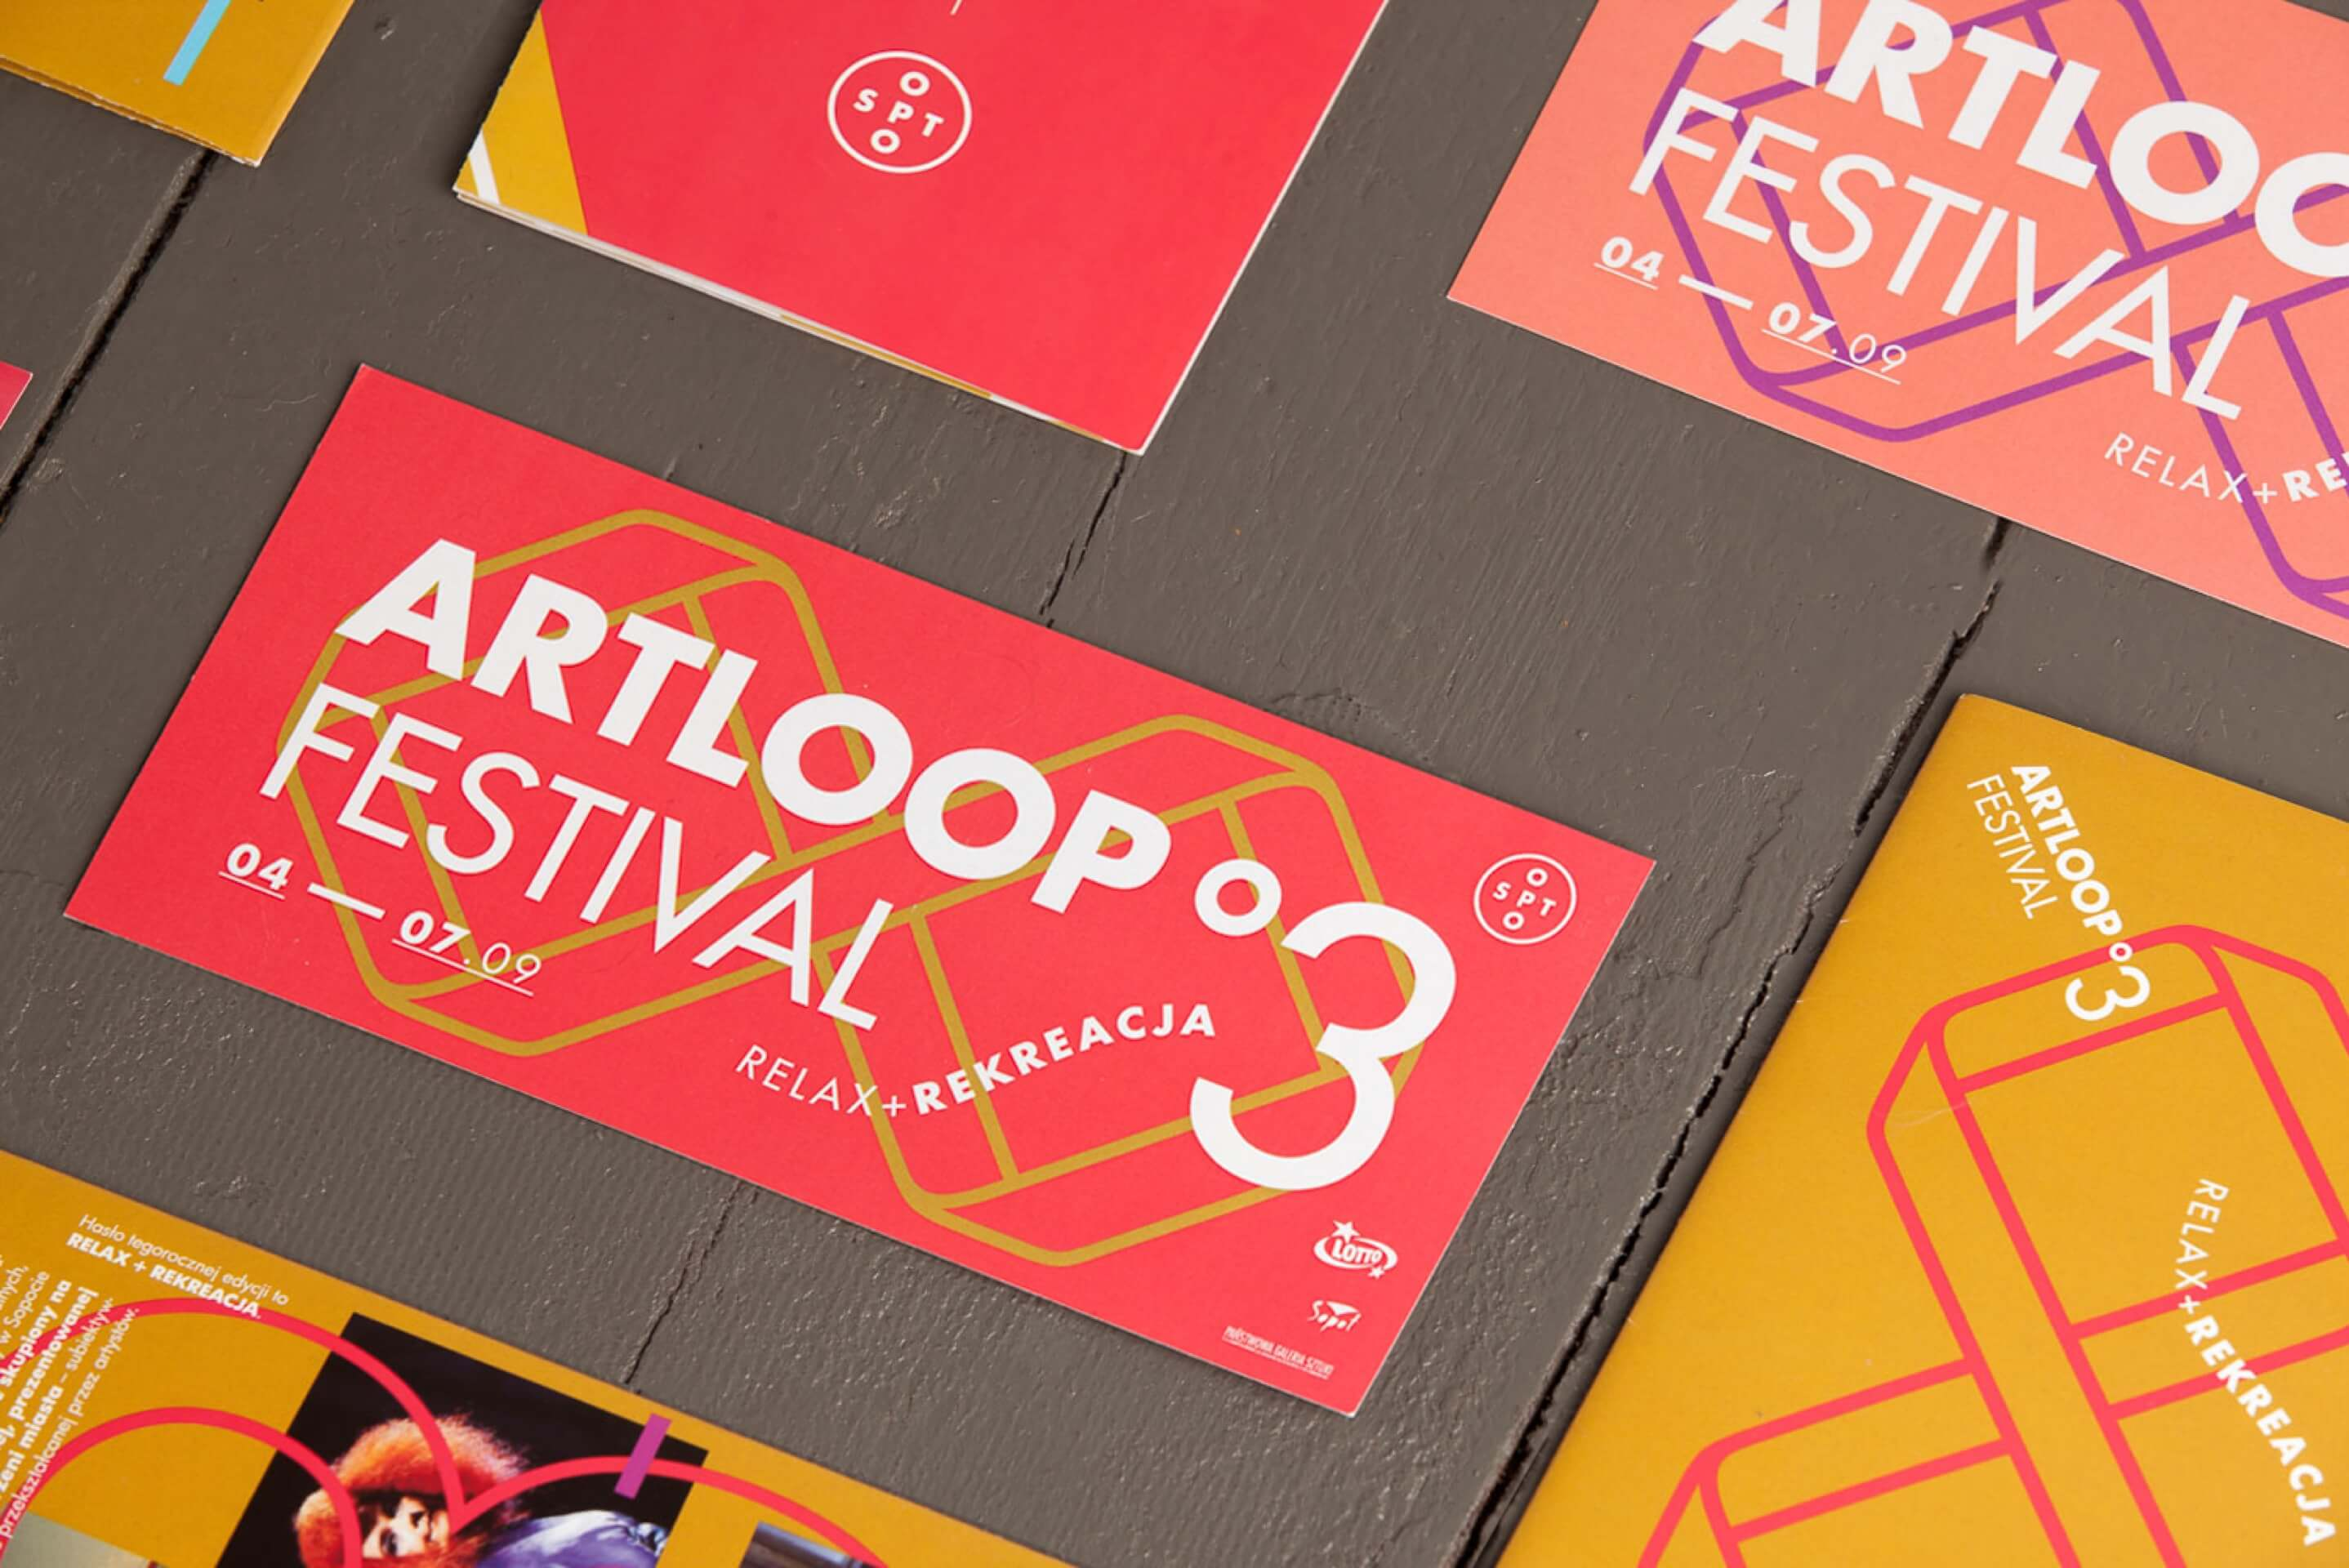 Print design - Artloop Festival 2014 by Uniforma Studio